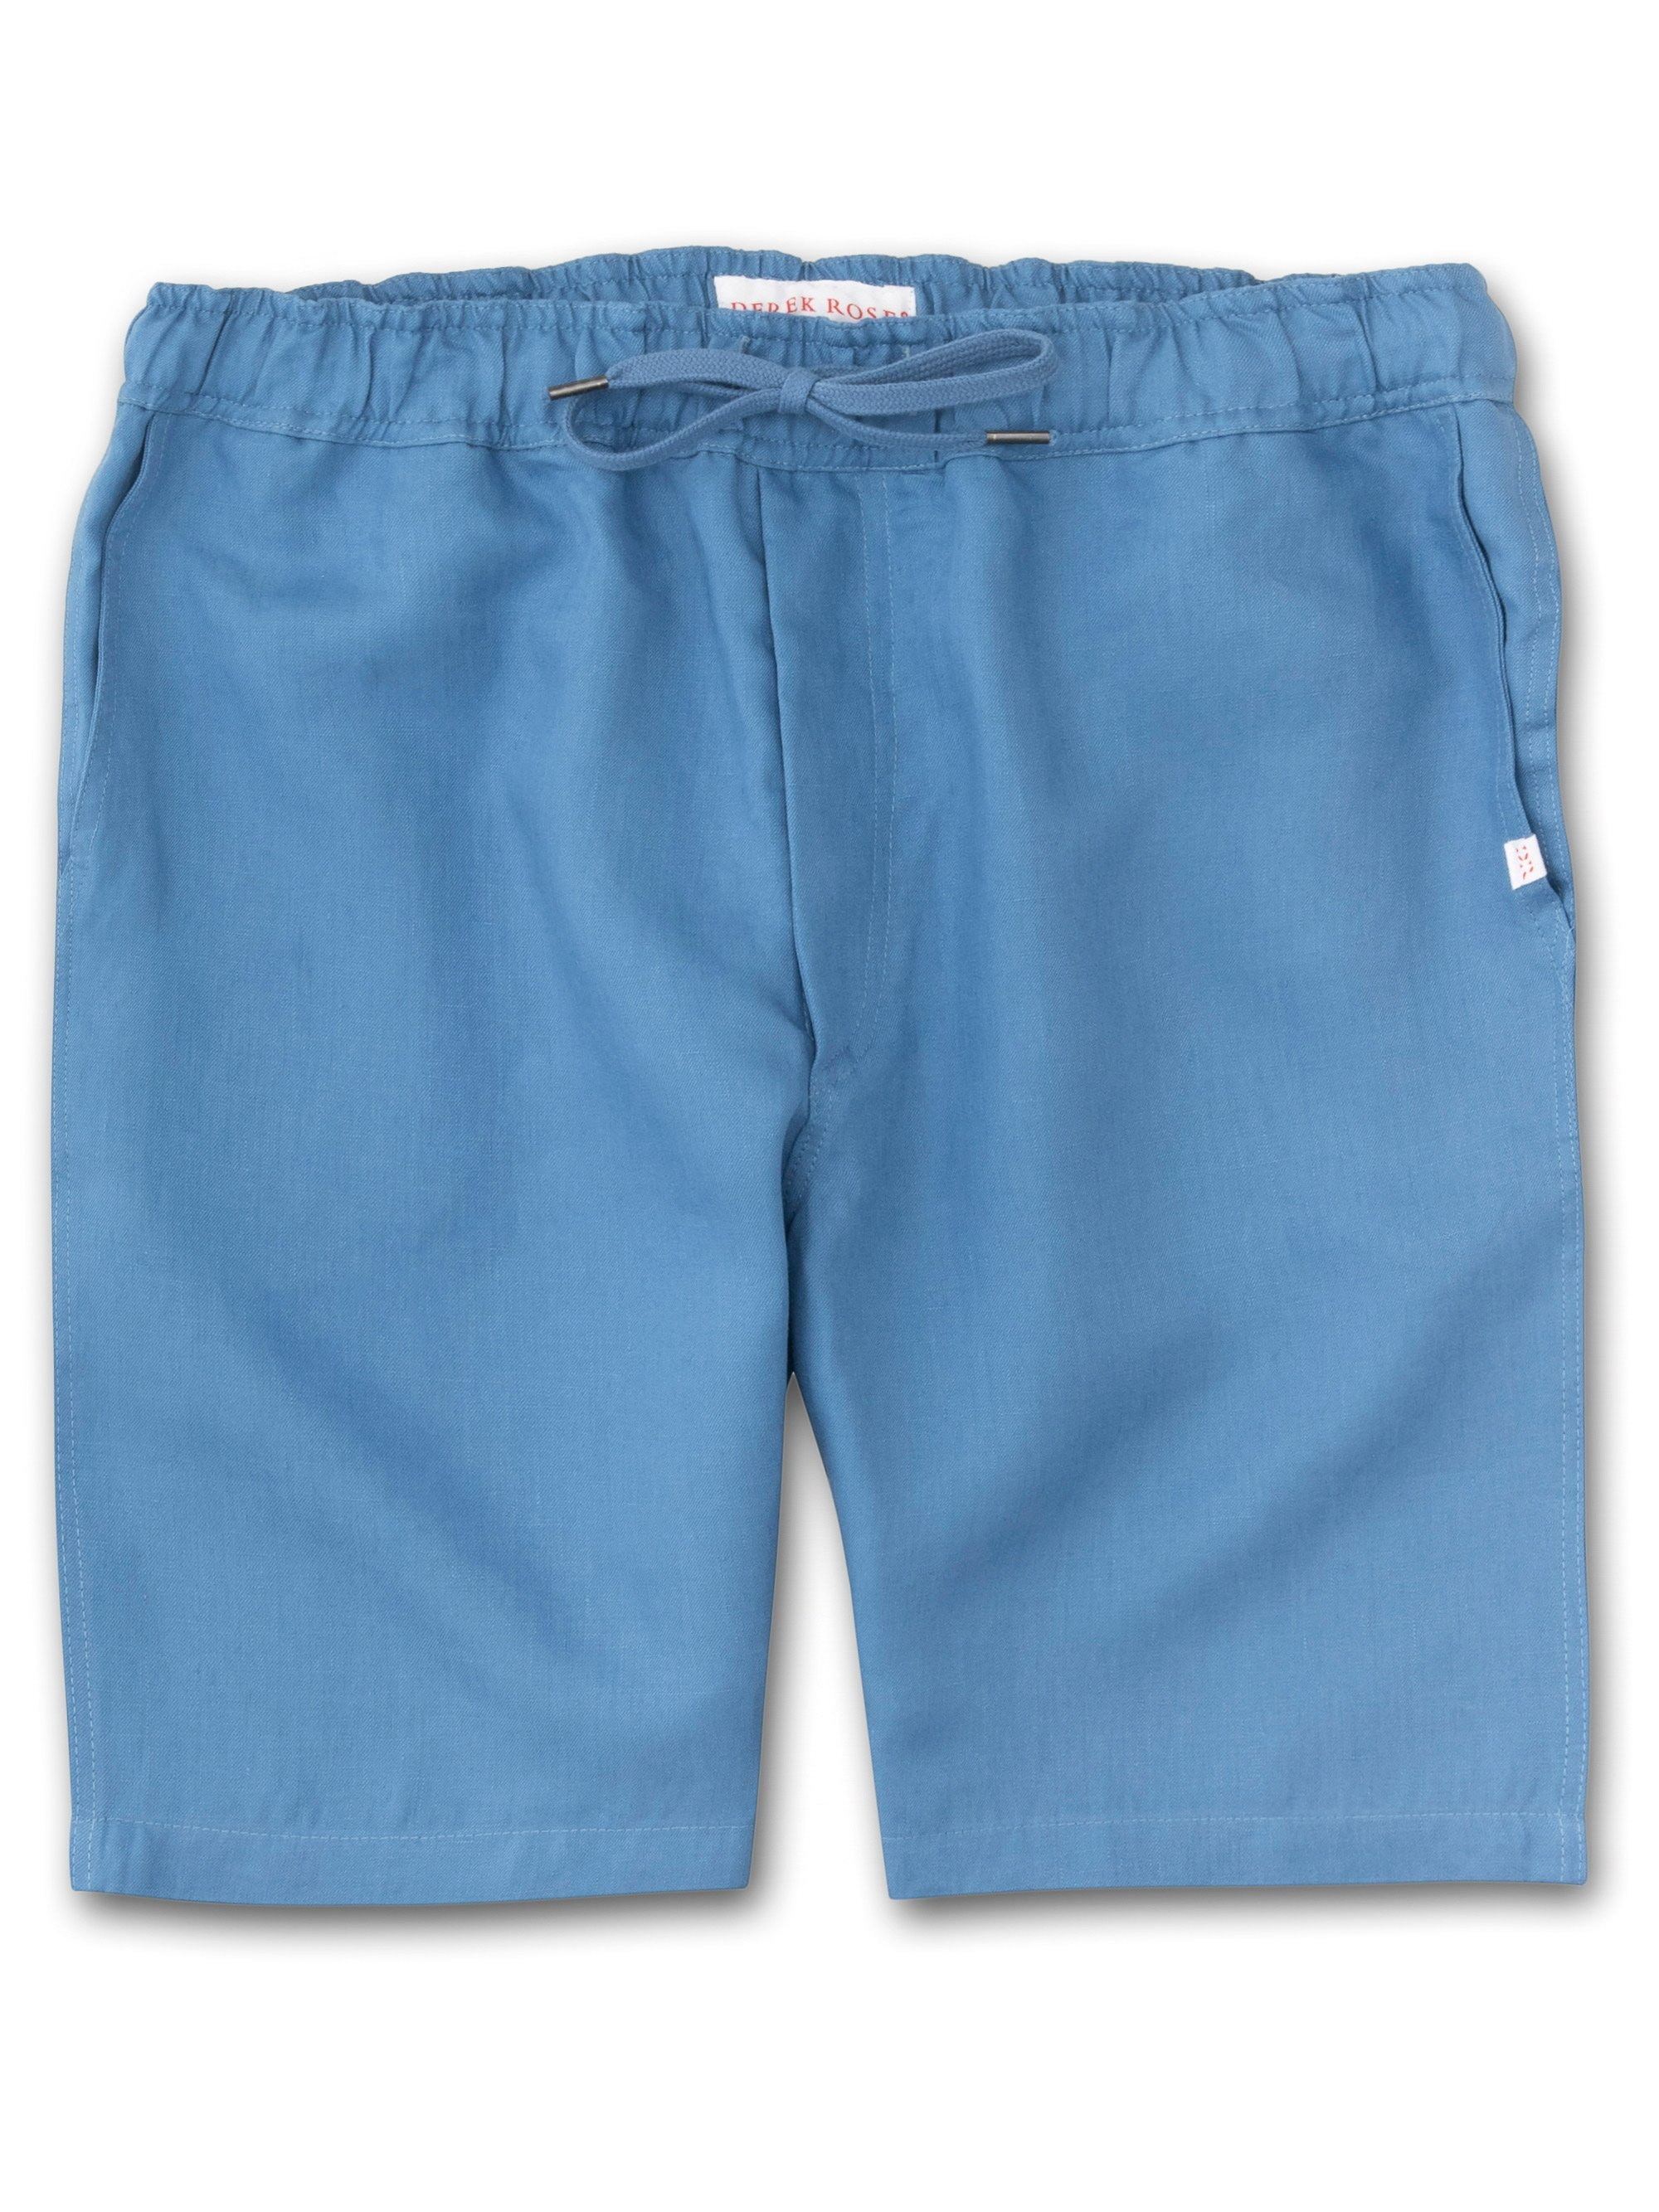 Men's Linen Shorts Sydney Linen Blue